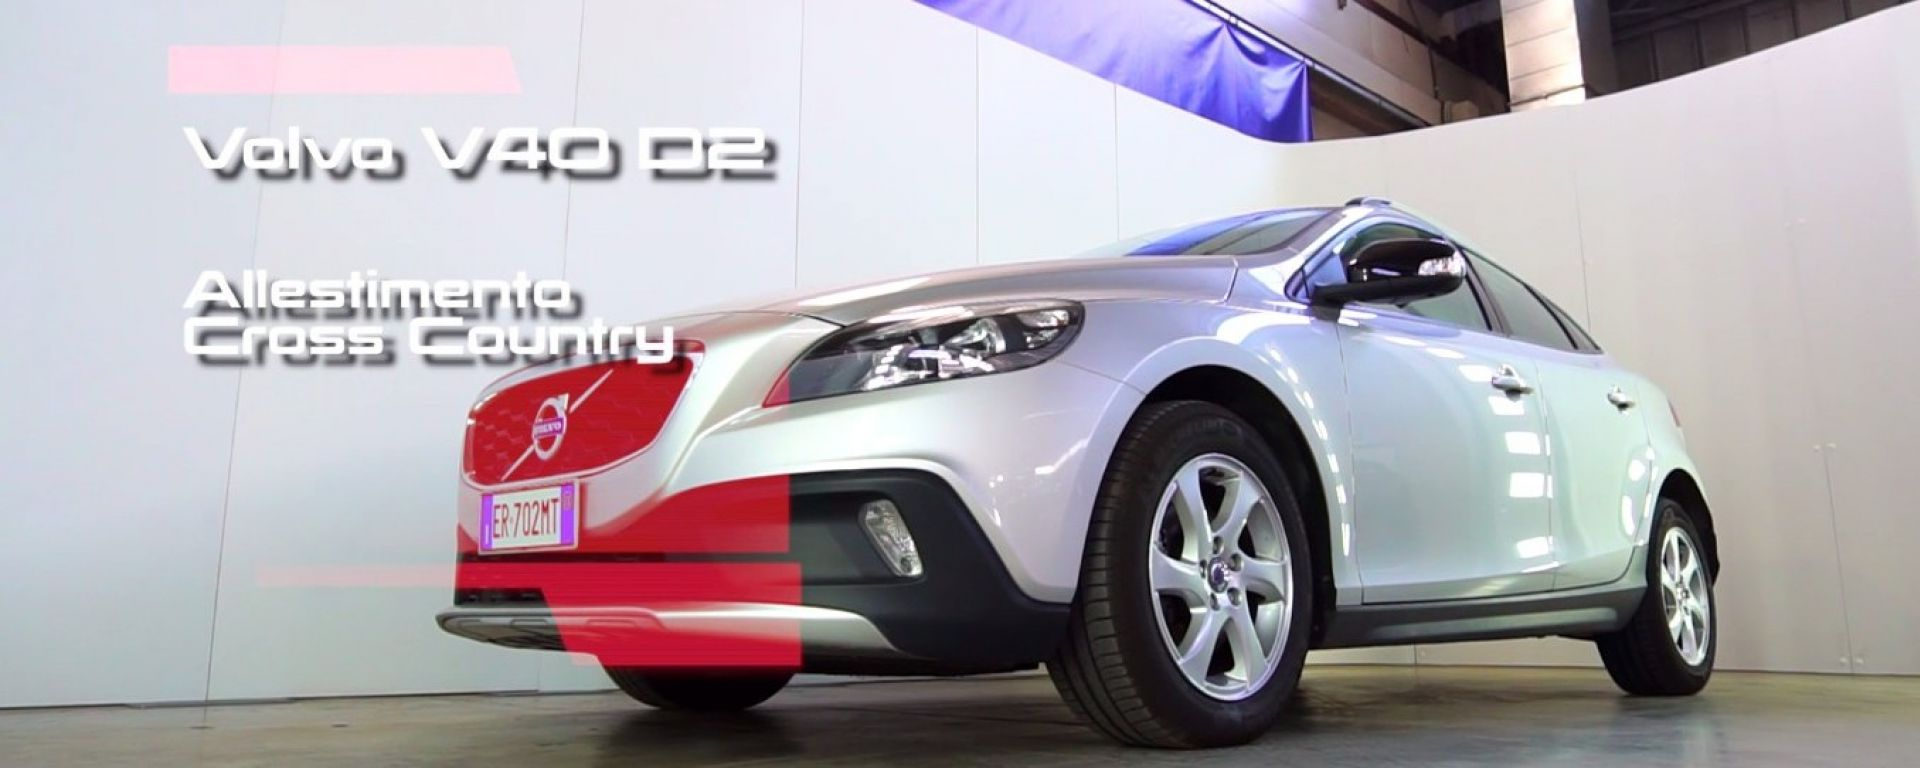 Volvo V40 Cross Country: Check Up Usato [VIDEO]